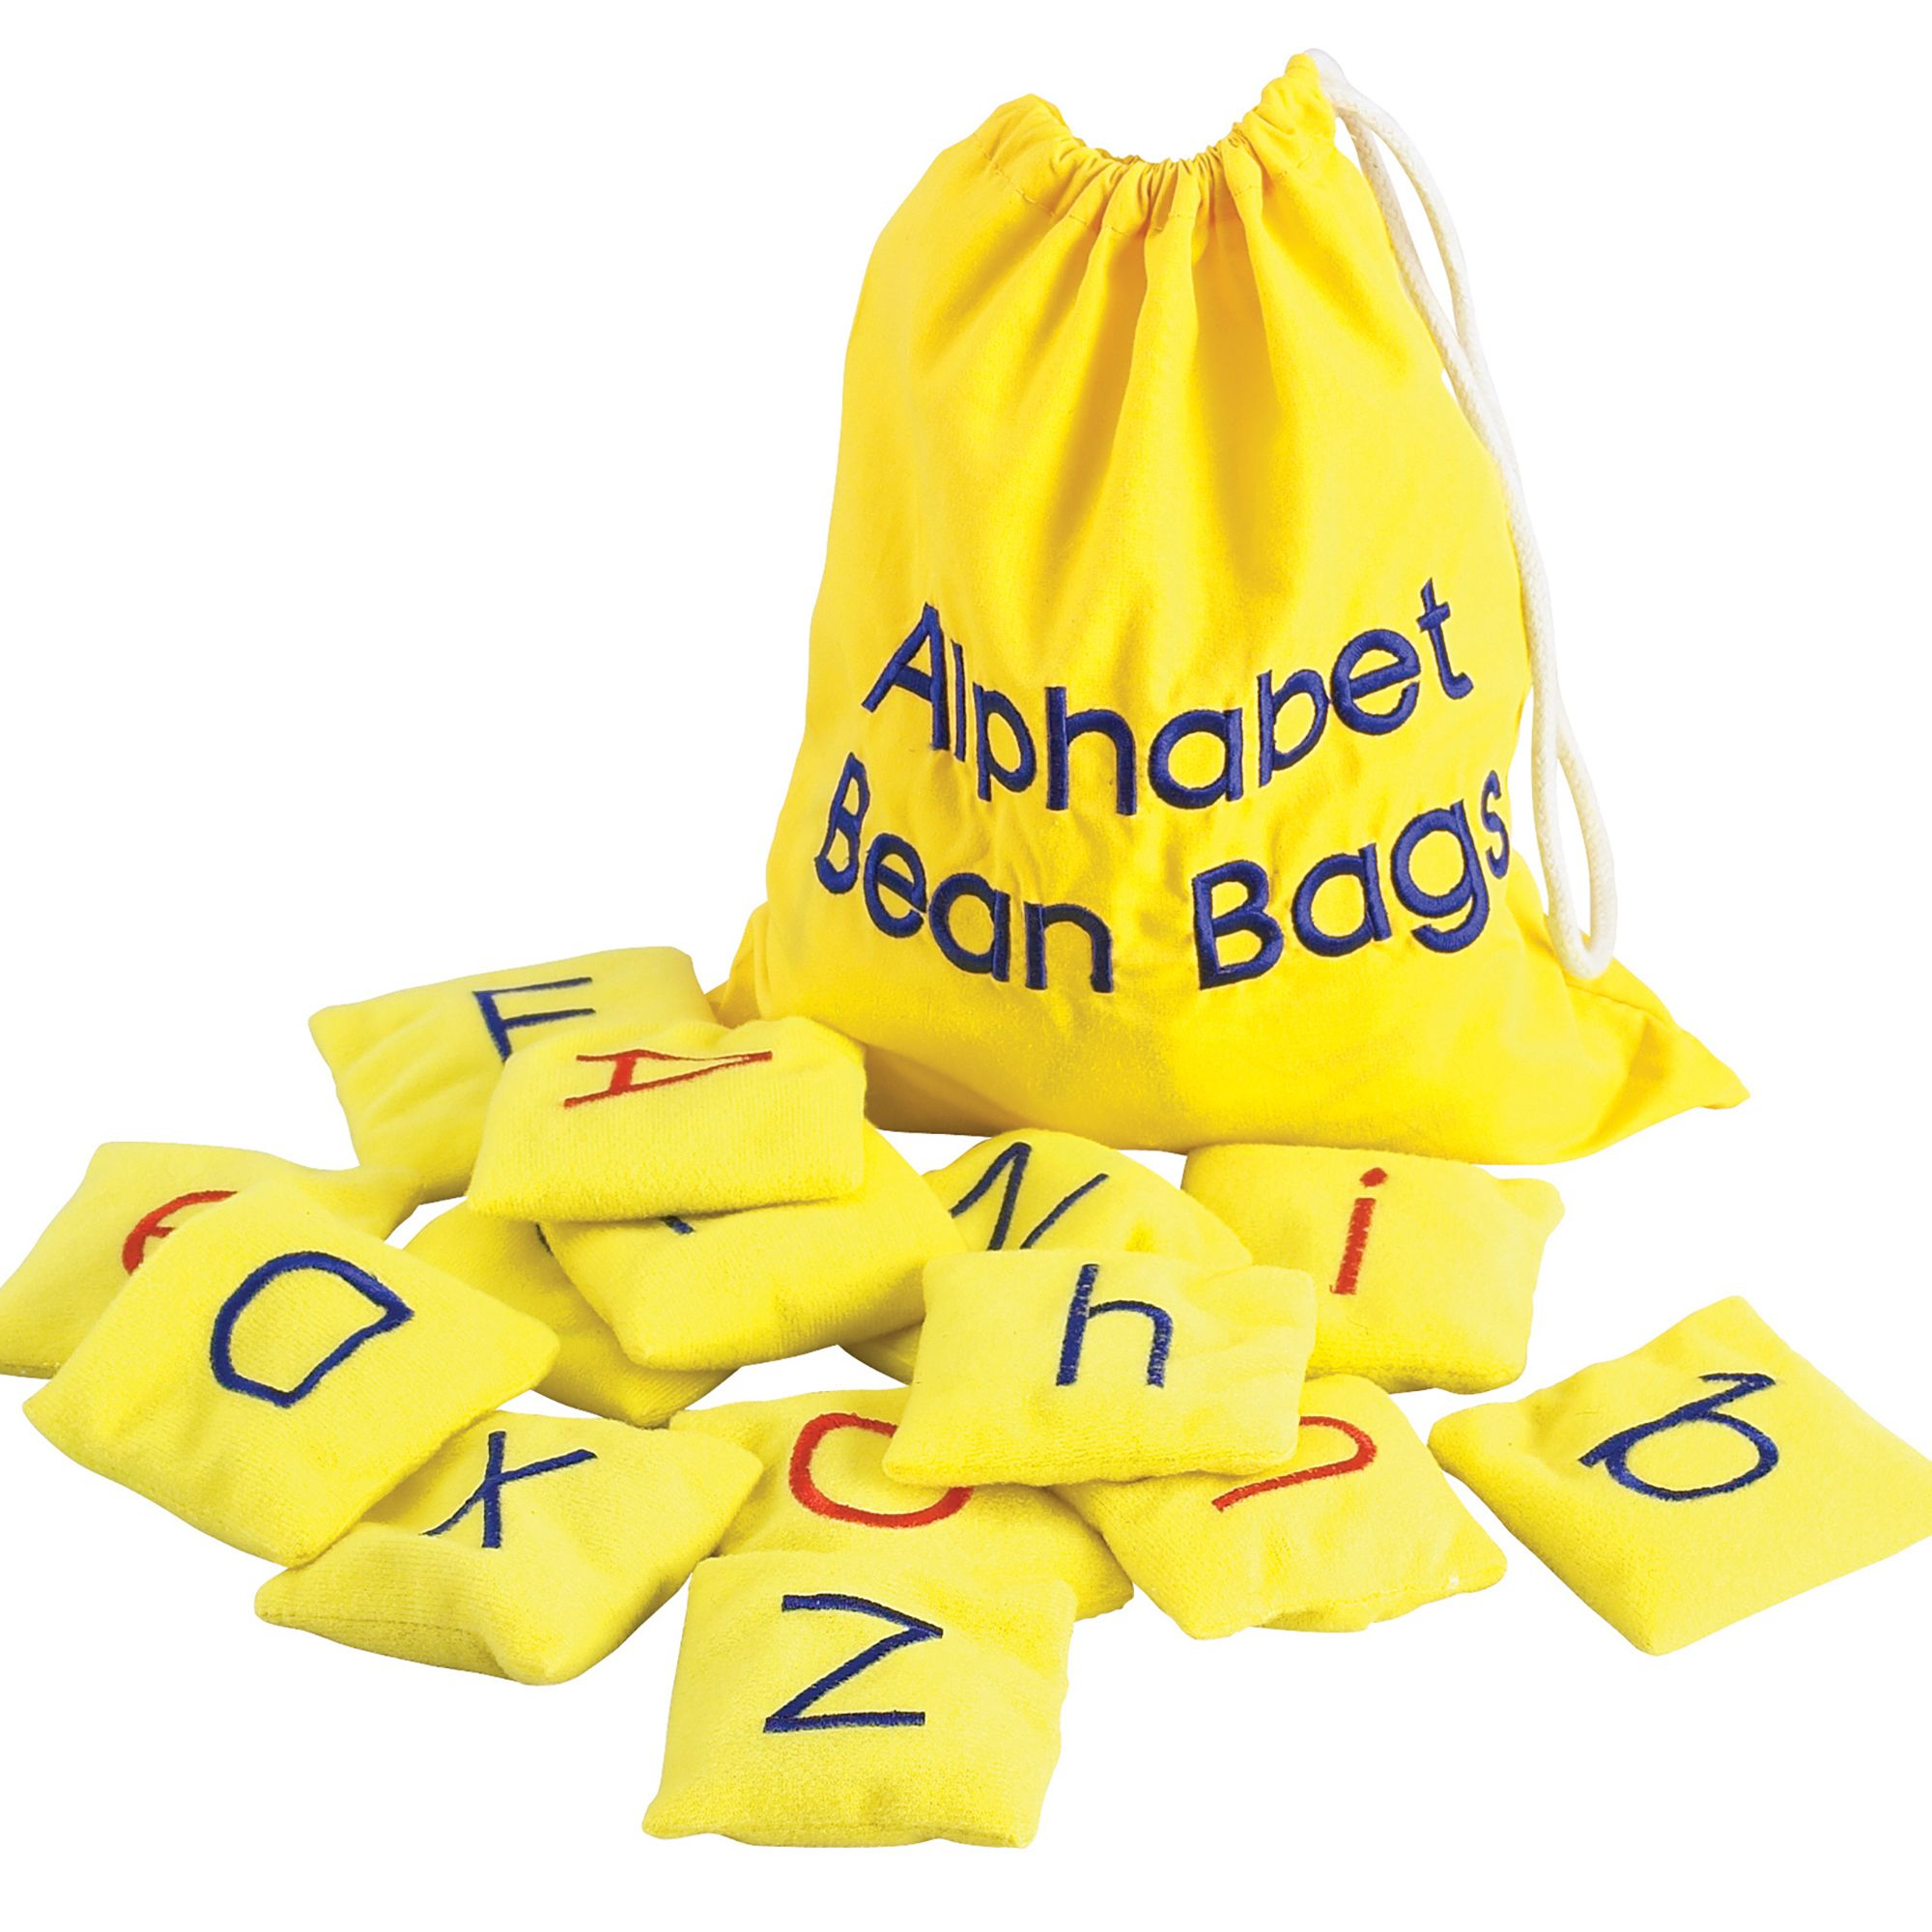 Educational Insights Alphabet Bean Bags Alphabet games